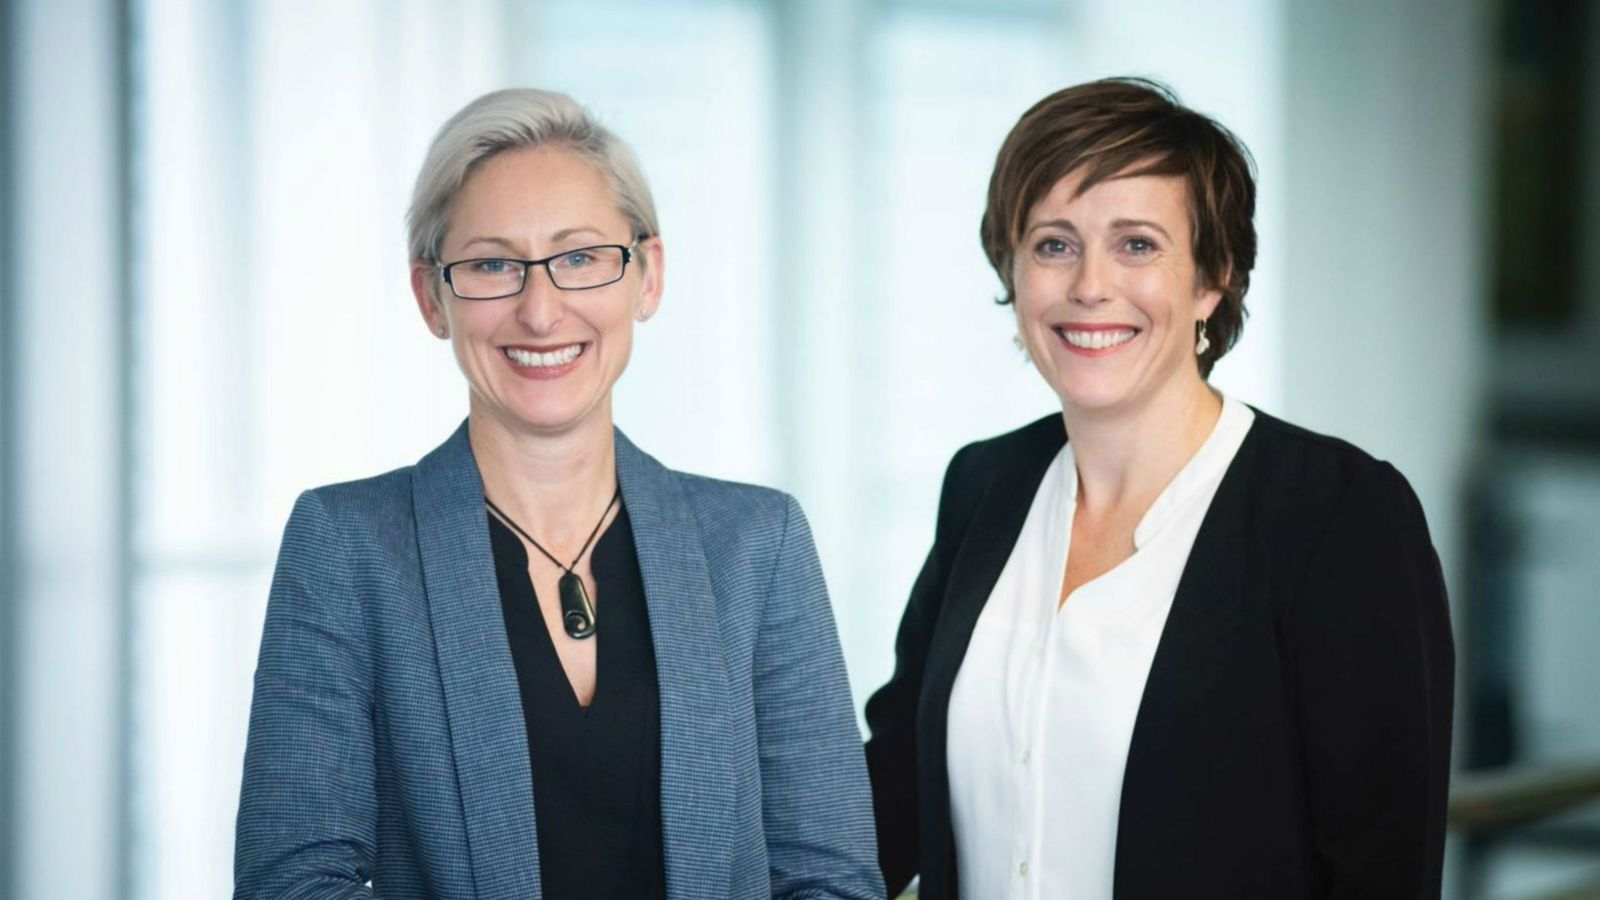 A portrait of Caz Hales and Helen Rook